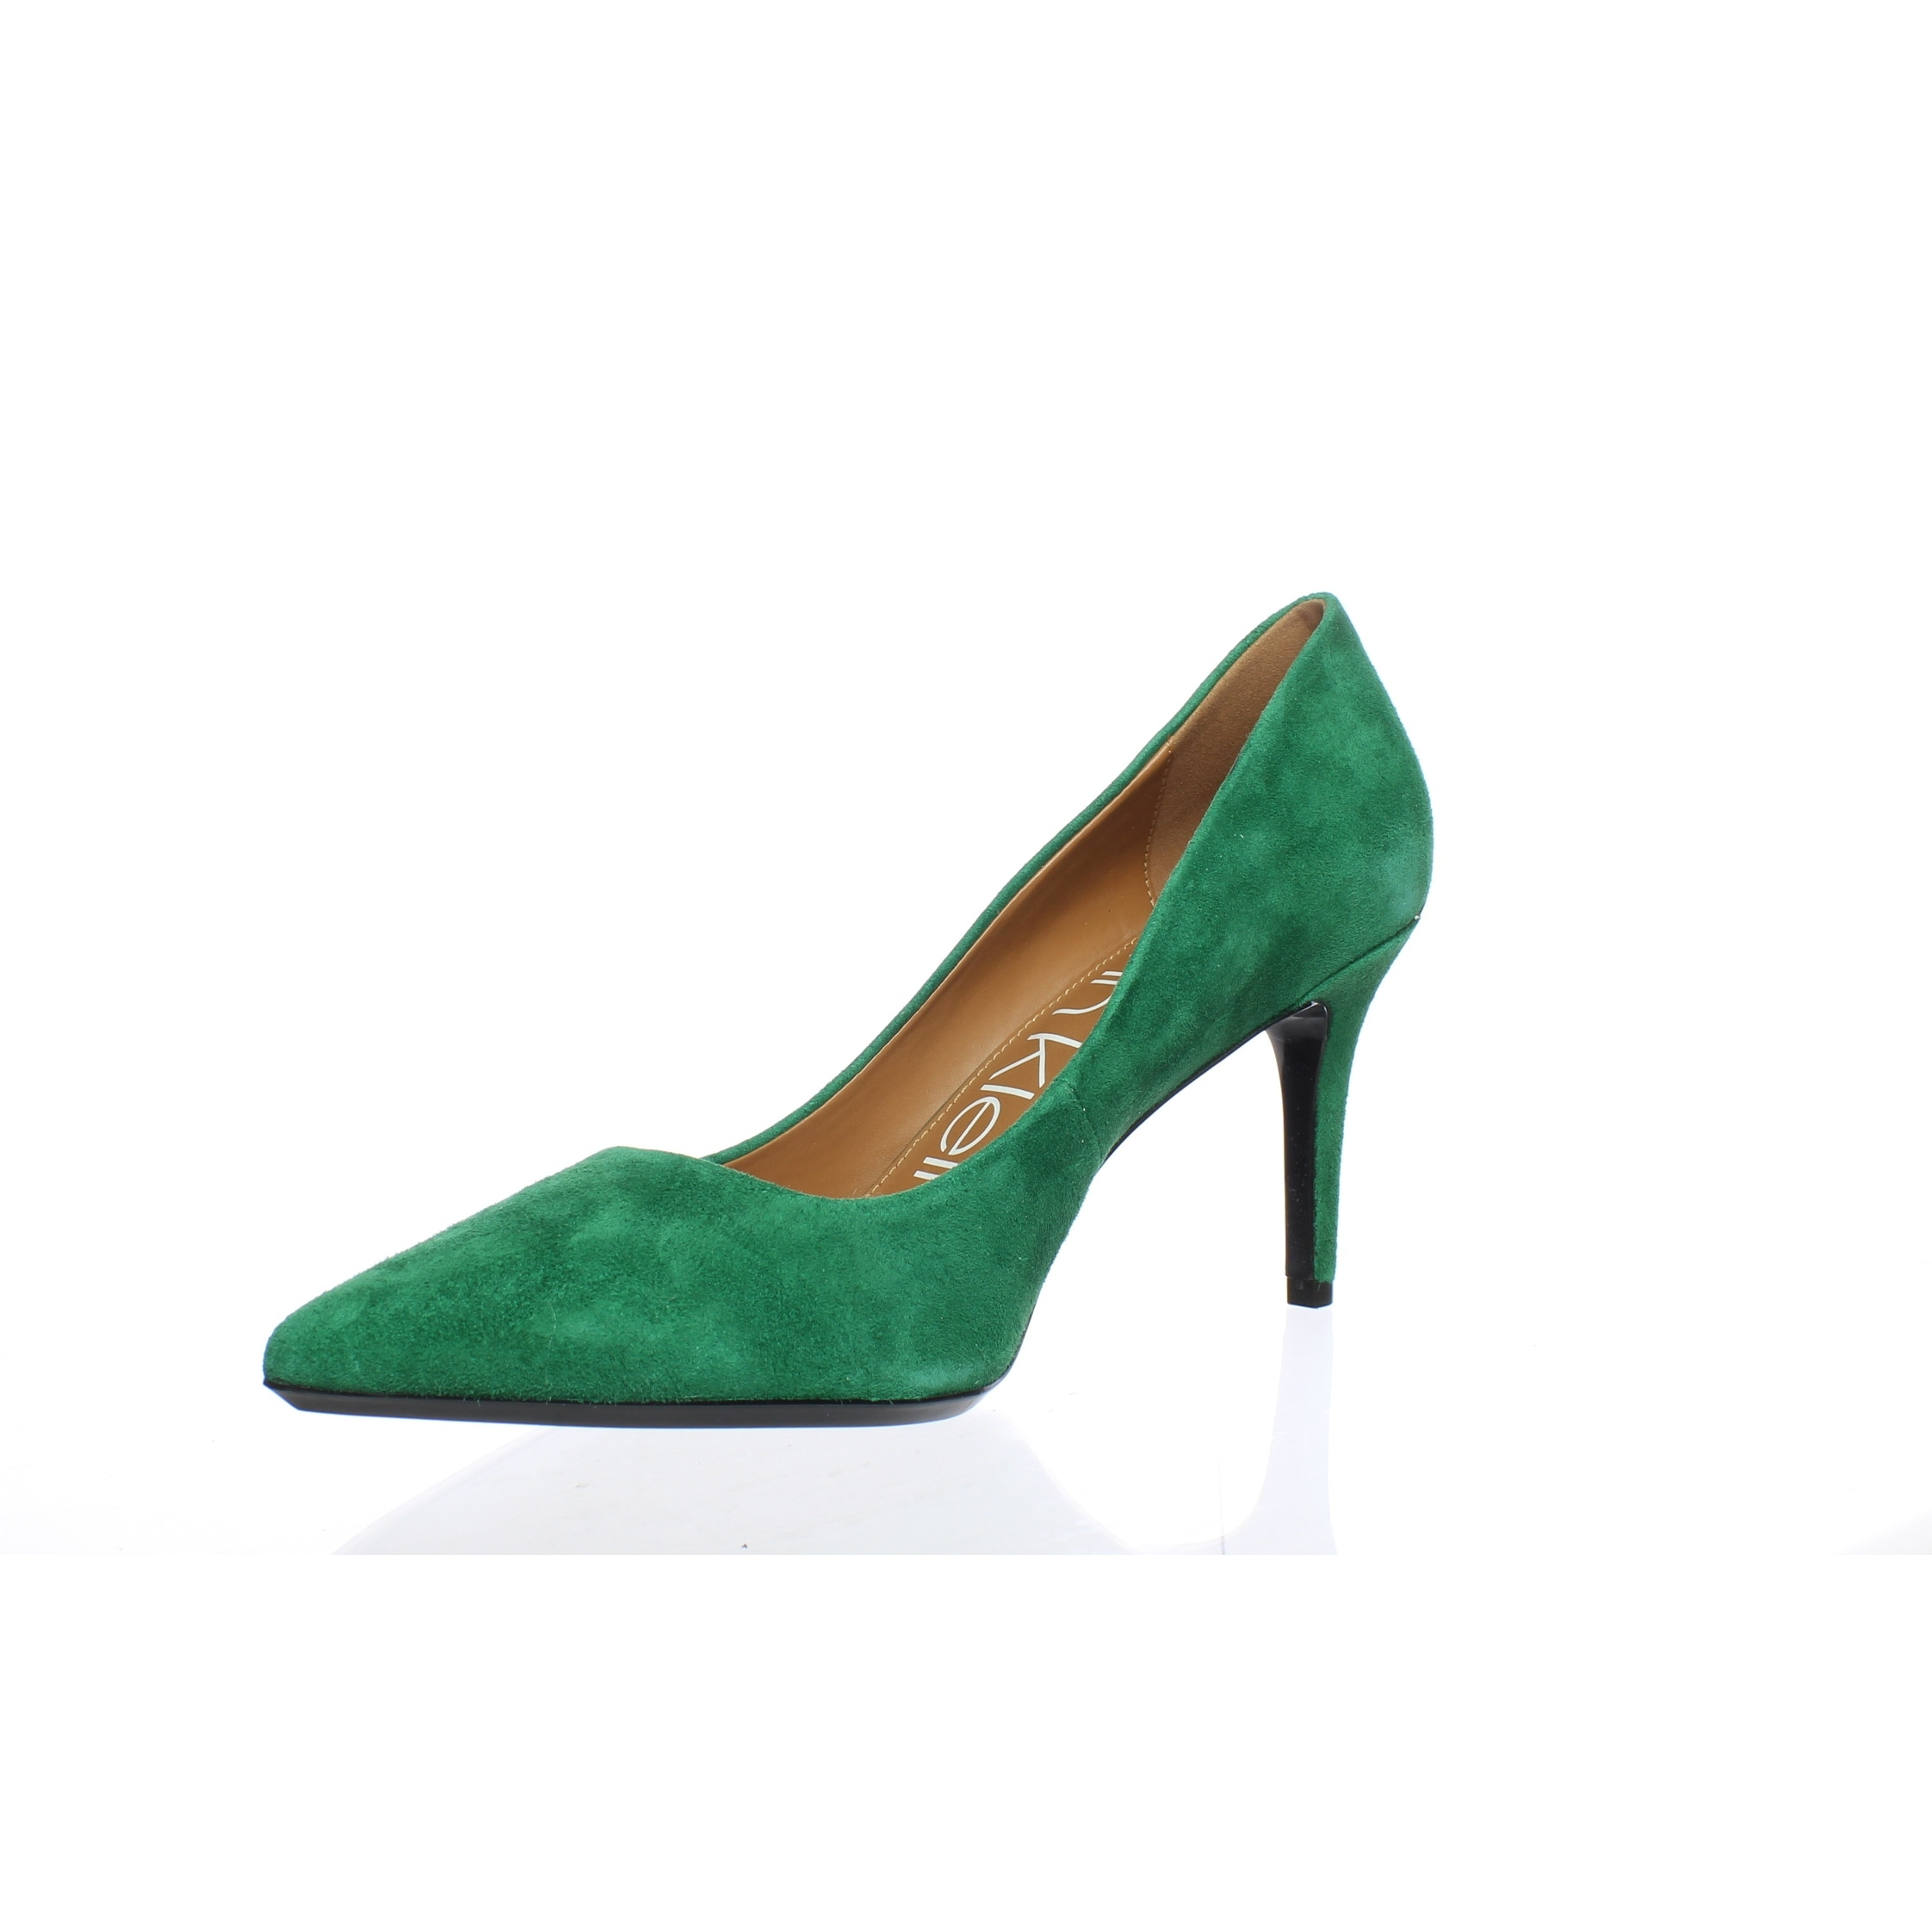 606e0ac957 Shop Calvin Klein Womens Gayle Grass Green Pumps Size 8.5 - Free Shipping  On Orders Over $45 - Overstock - 27876727